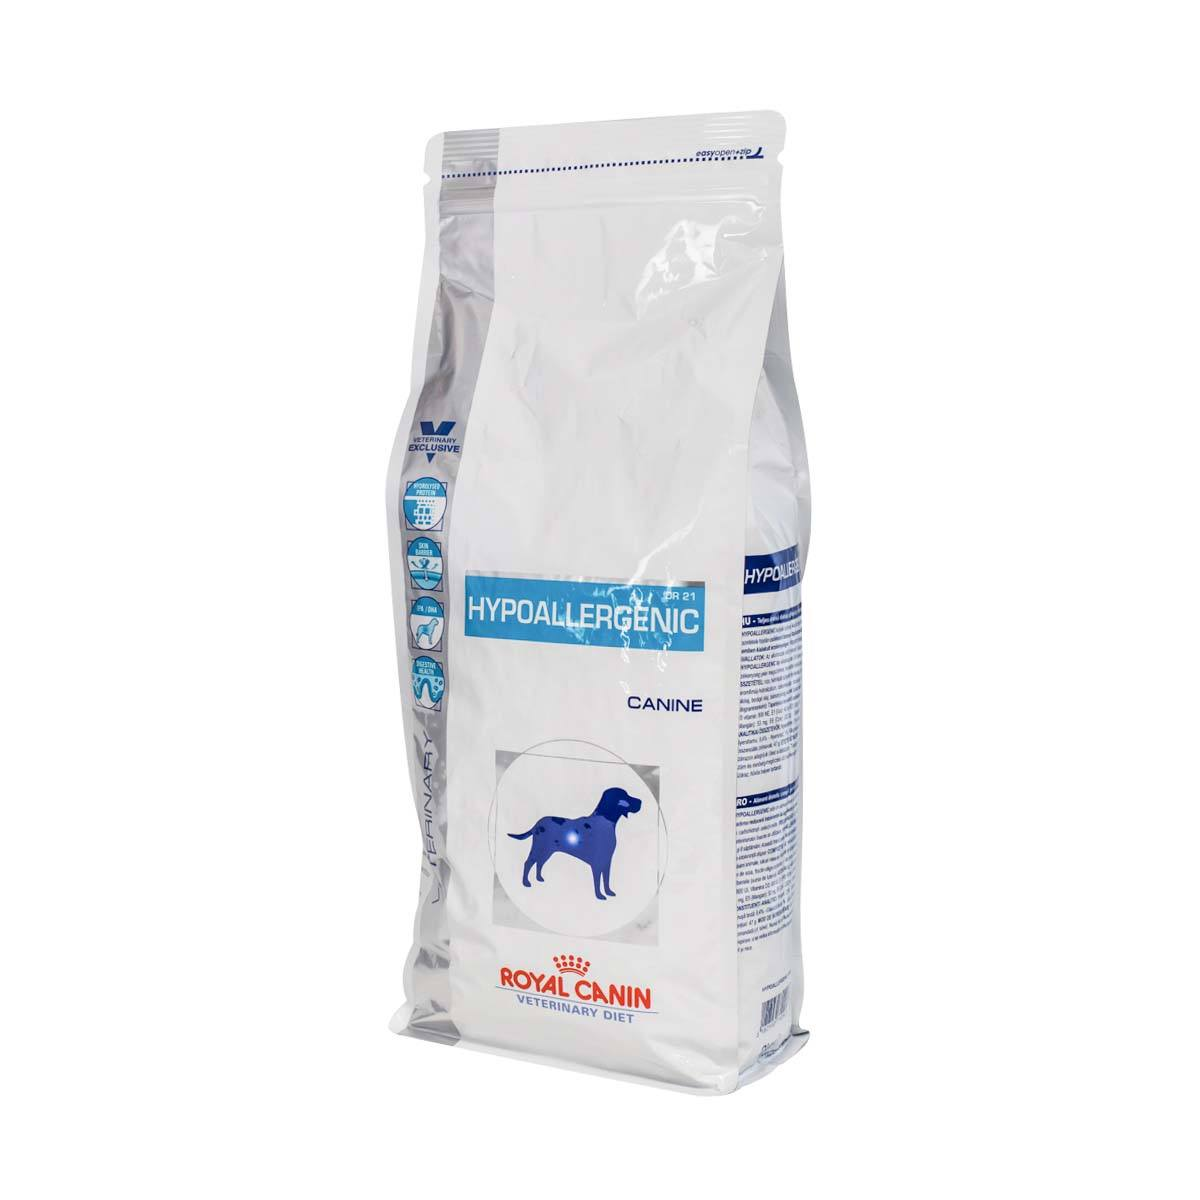 royal canin hypoallergenic  Royal Canin Vet Diet Dog Food: Hypoallergenic